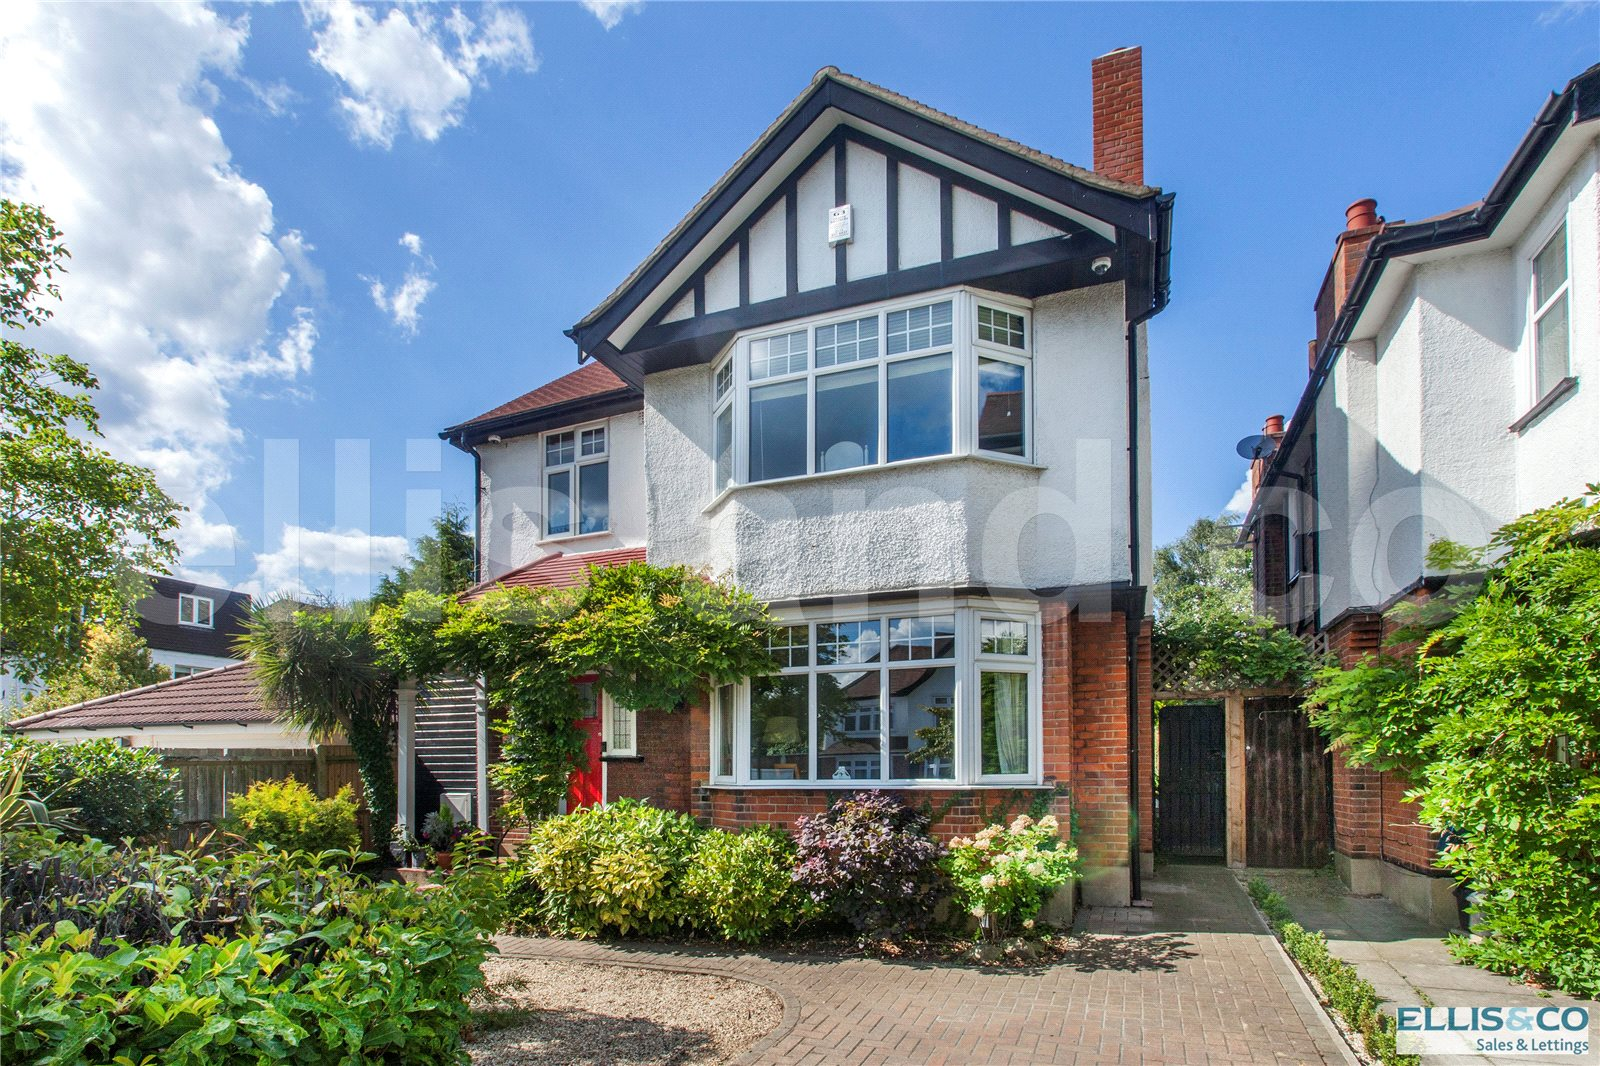 5 Bedrooms Detached House for sale in Goodwyn Avenue Mill Hill London NW7